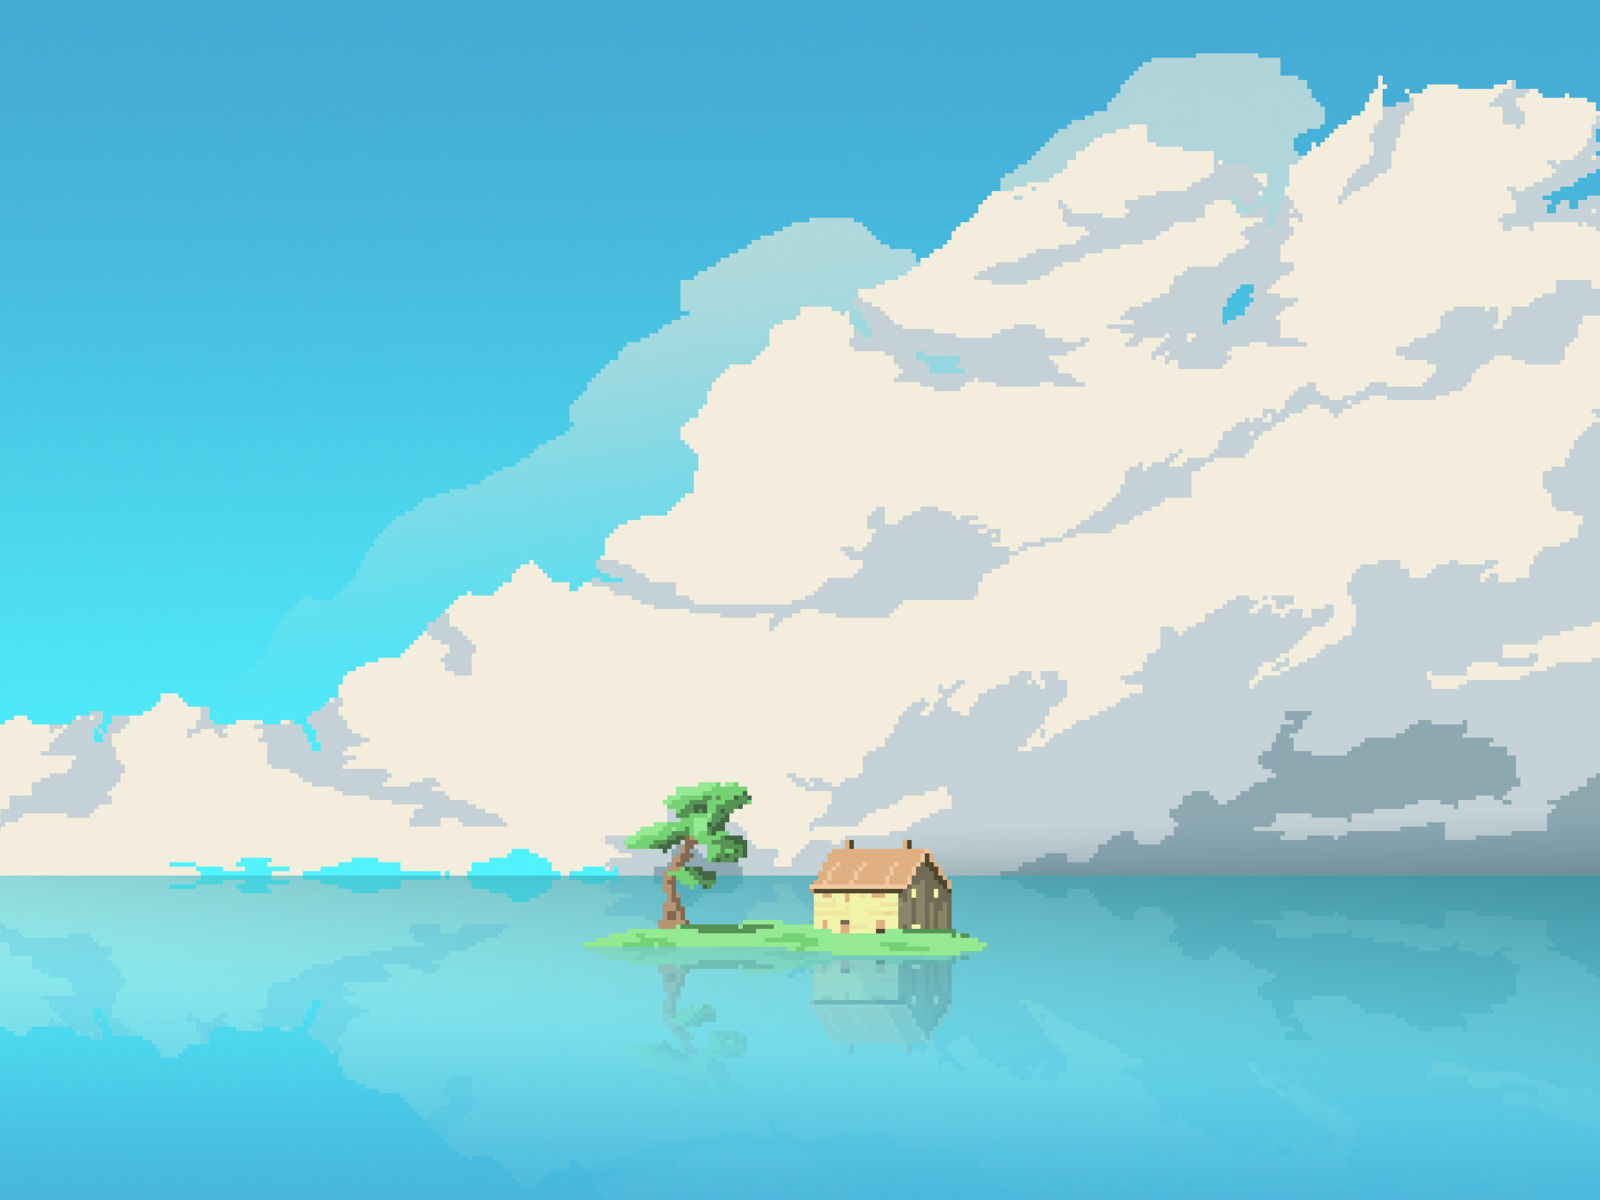 8-bit-artwork-house-island-in-middle-of-water-8v.jpg